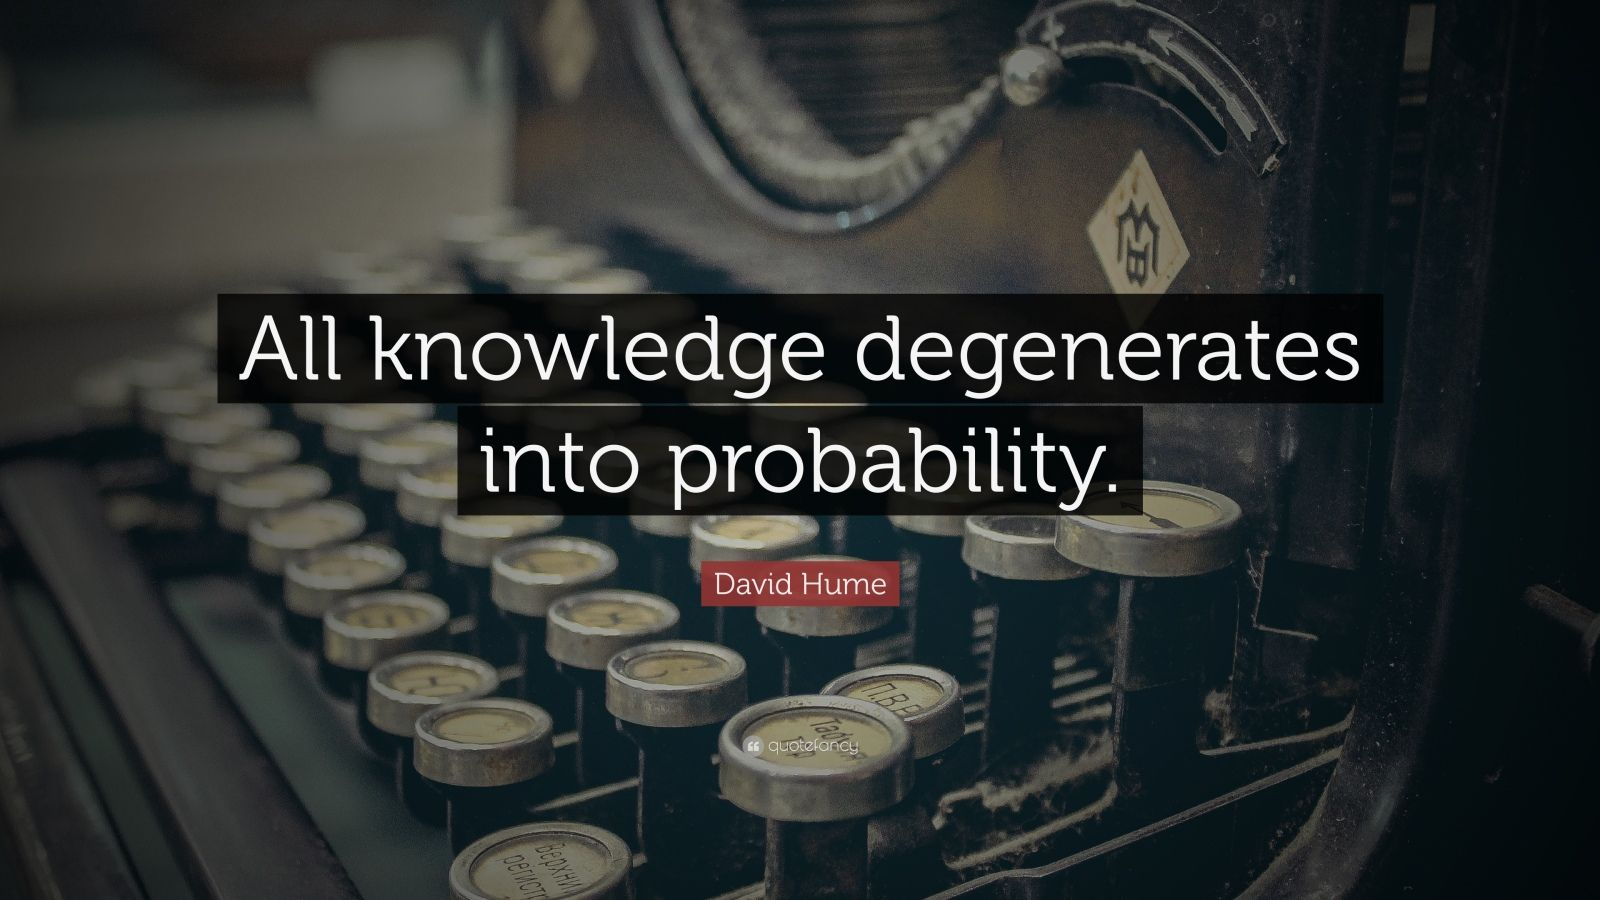 hume believed that all knowledge came from experience The rationalists relied on reason, not sensory experience, to explain the world in turn, the empiricists—john locke, george berkeley, and david hume—argued that knowledge comes from experience, not pure reason taken as far as logic allows, that entails some astonishing claims about reality.